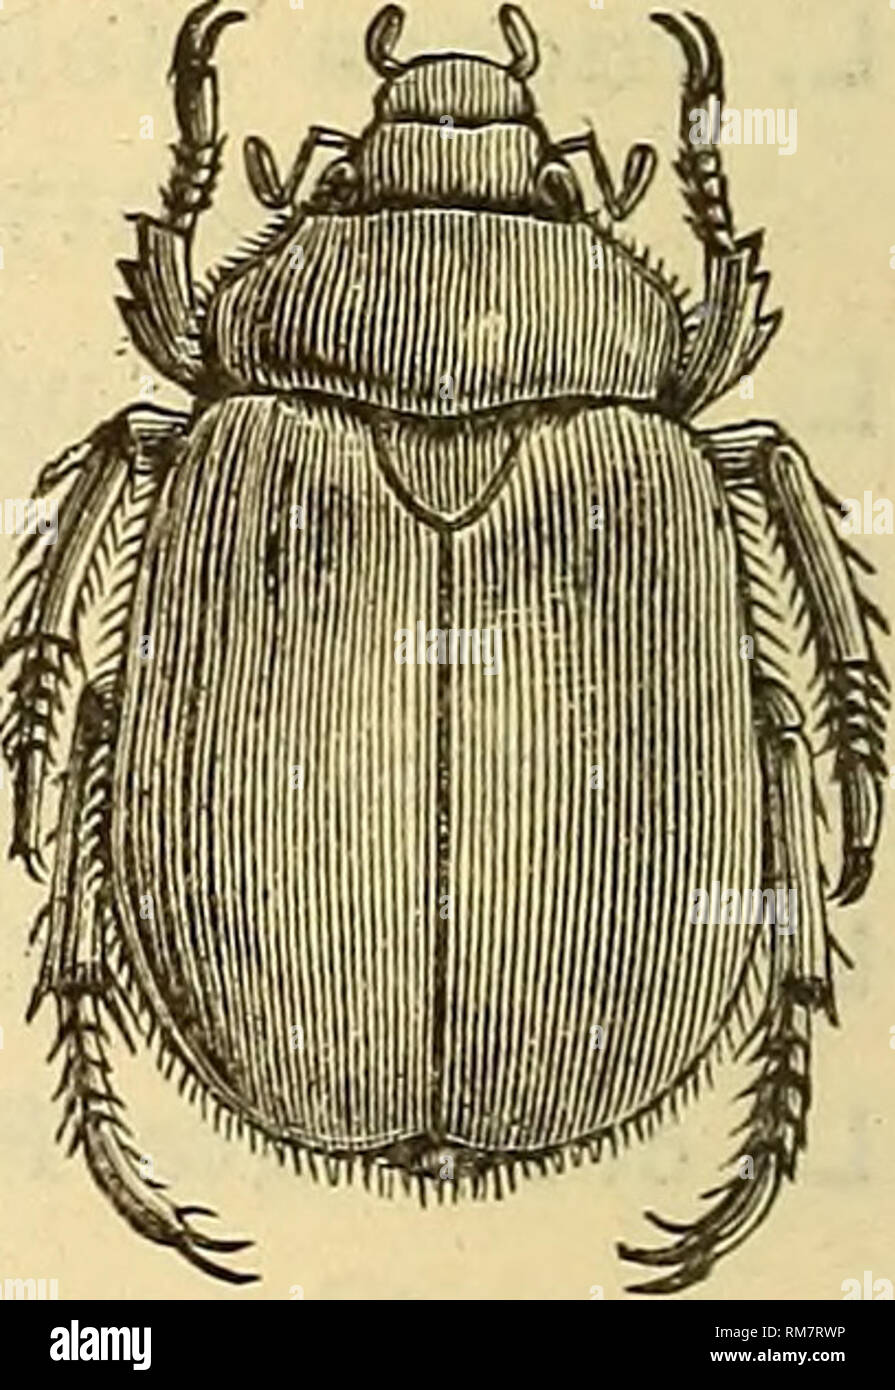 """. Annual report, including a report of the insects of New Jersey, 1909. 320 REPORT OF NEW JERSEY STATE MUSEUM. ANOMALA Koeppe. A. binotata Gyll. Throughout the Delaware Valley, the pine barrens and maritime regions III-V, locally not rare. A. innuba Fab. (minuta Burm.) Anglesea (div). A. undulata Mels. Throughout the State IV, VI, locally not rare. A. lucicola Fab. Throughout the State, common on grape and """"Ampe- lopsis"""" VI, VII; the most abundant form of the genus, and quite variable. A. obiivia Horn. Pine barrens V-VII, locally not rare; extending into the maritime and a little int Stock Photo"""